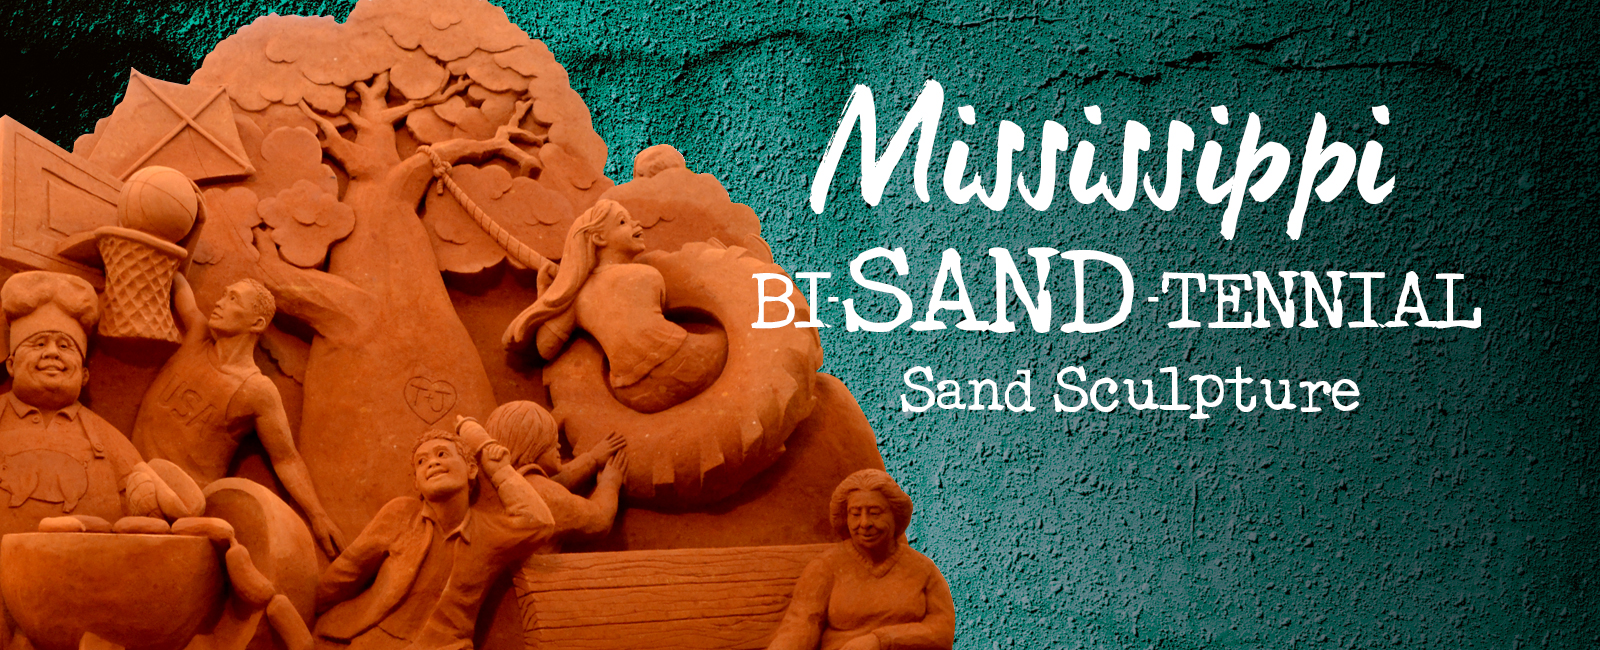 Sand Sculpture at Edgewater Mall